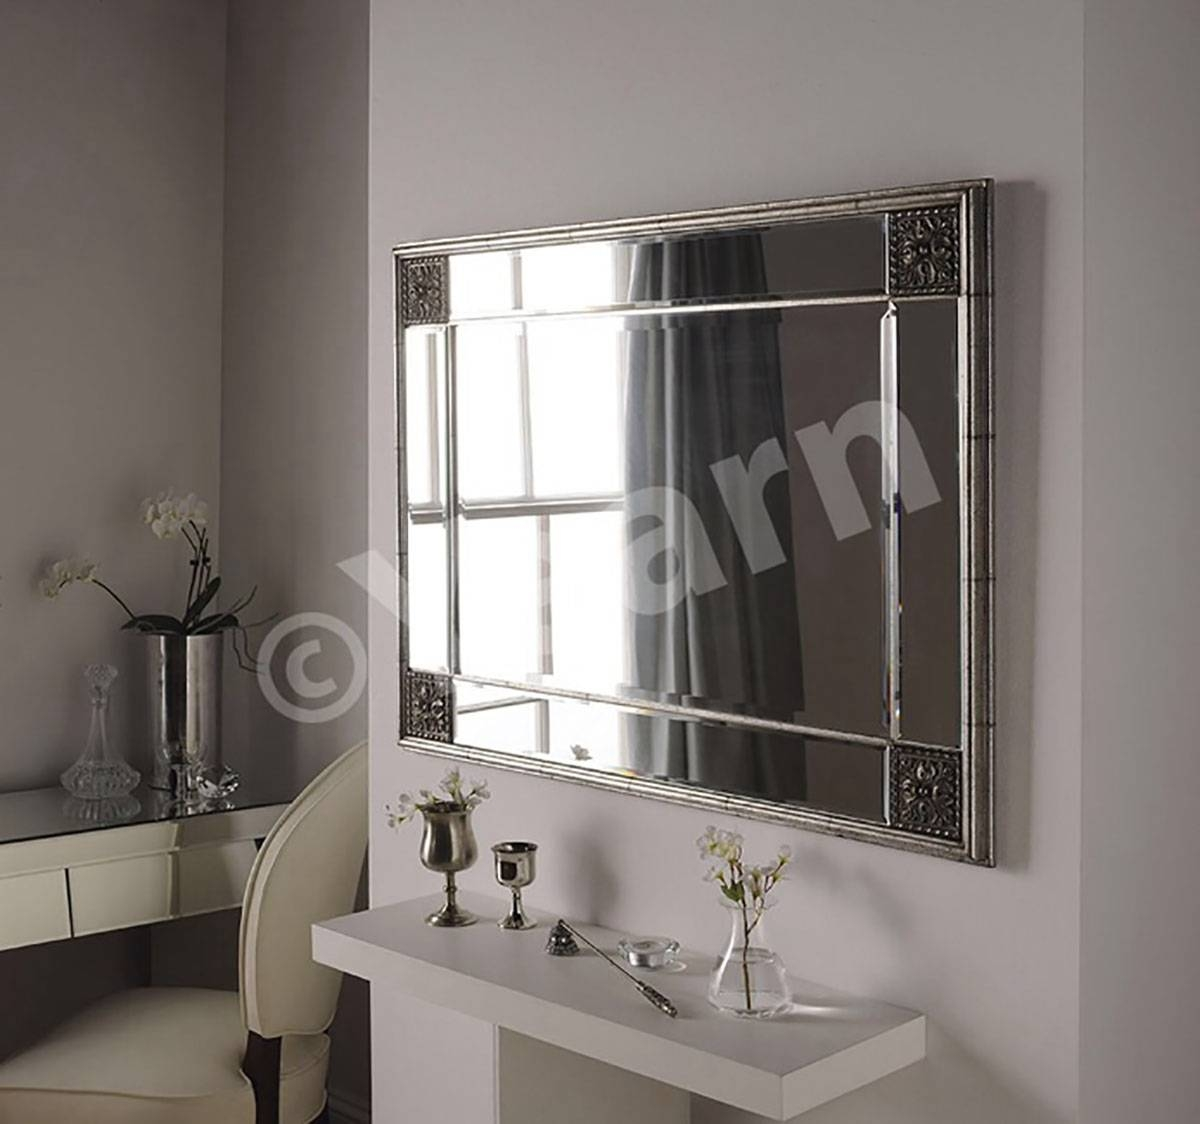 Elegance Contemporary Design Mirror - Mirror Elegance throughout Contemporary Mirrors (Image 13 of 25)